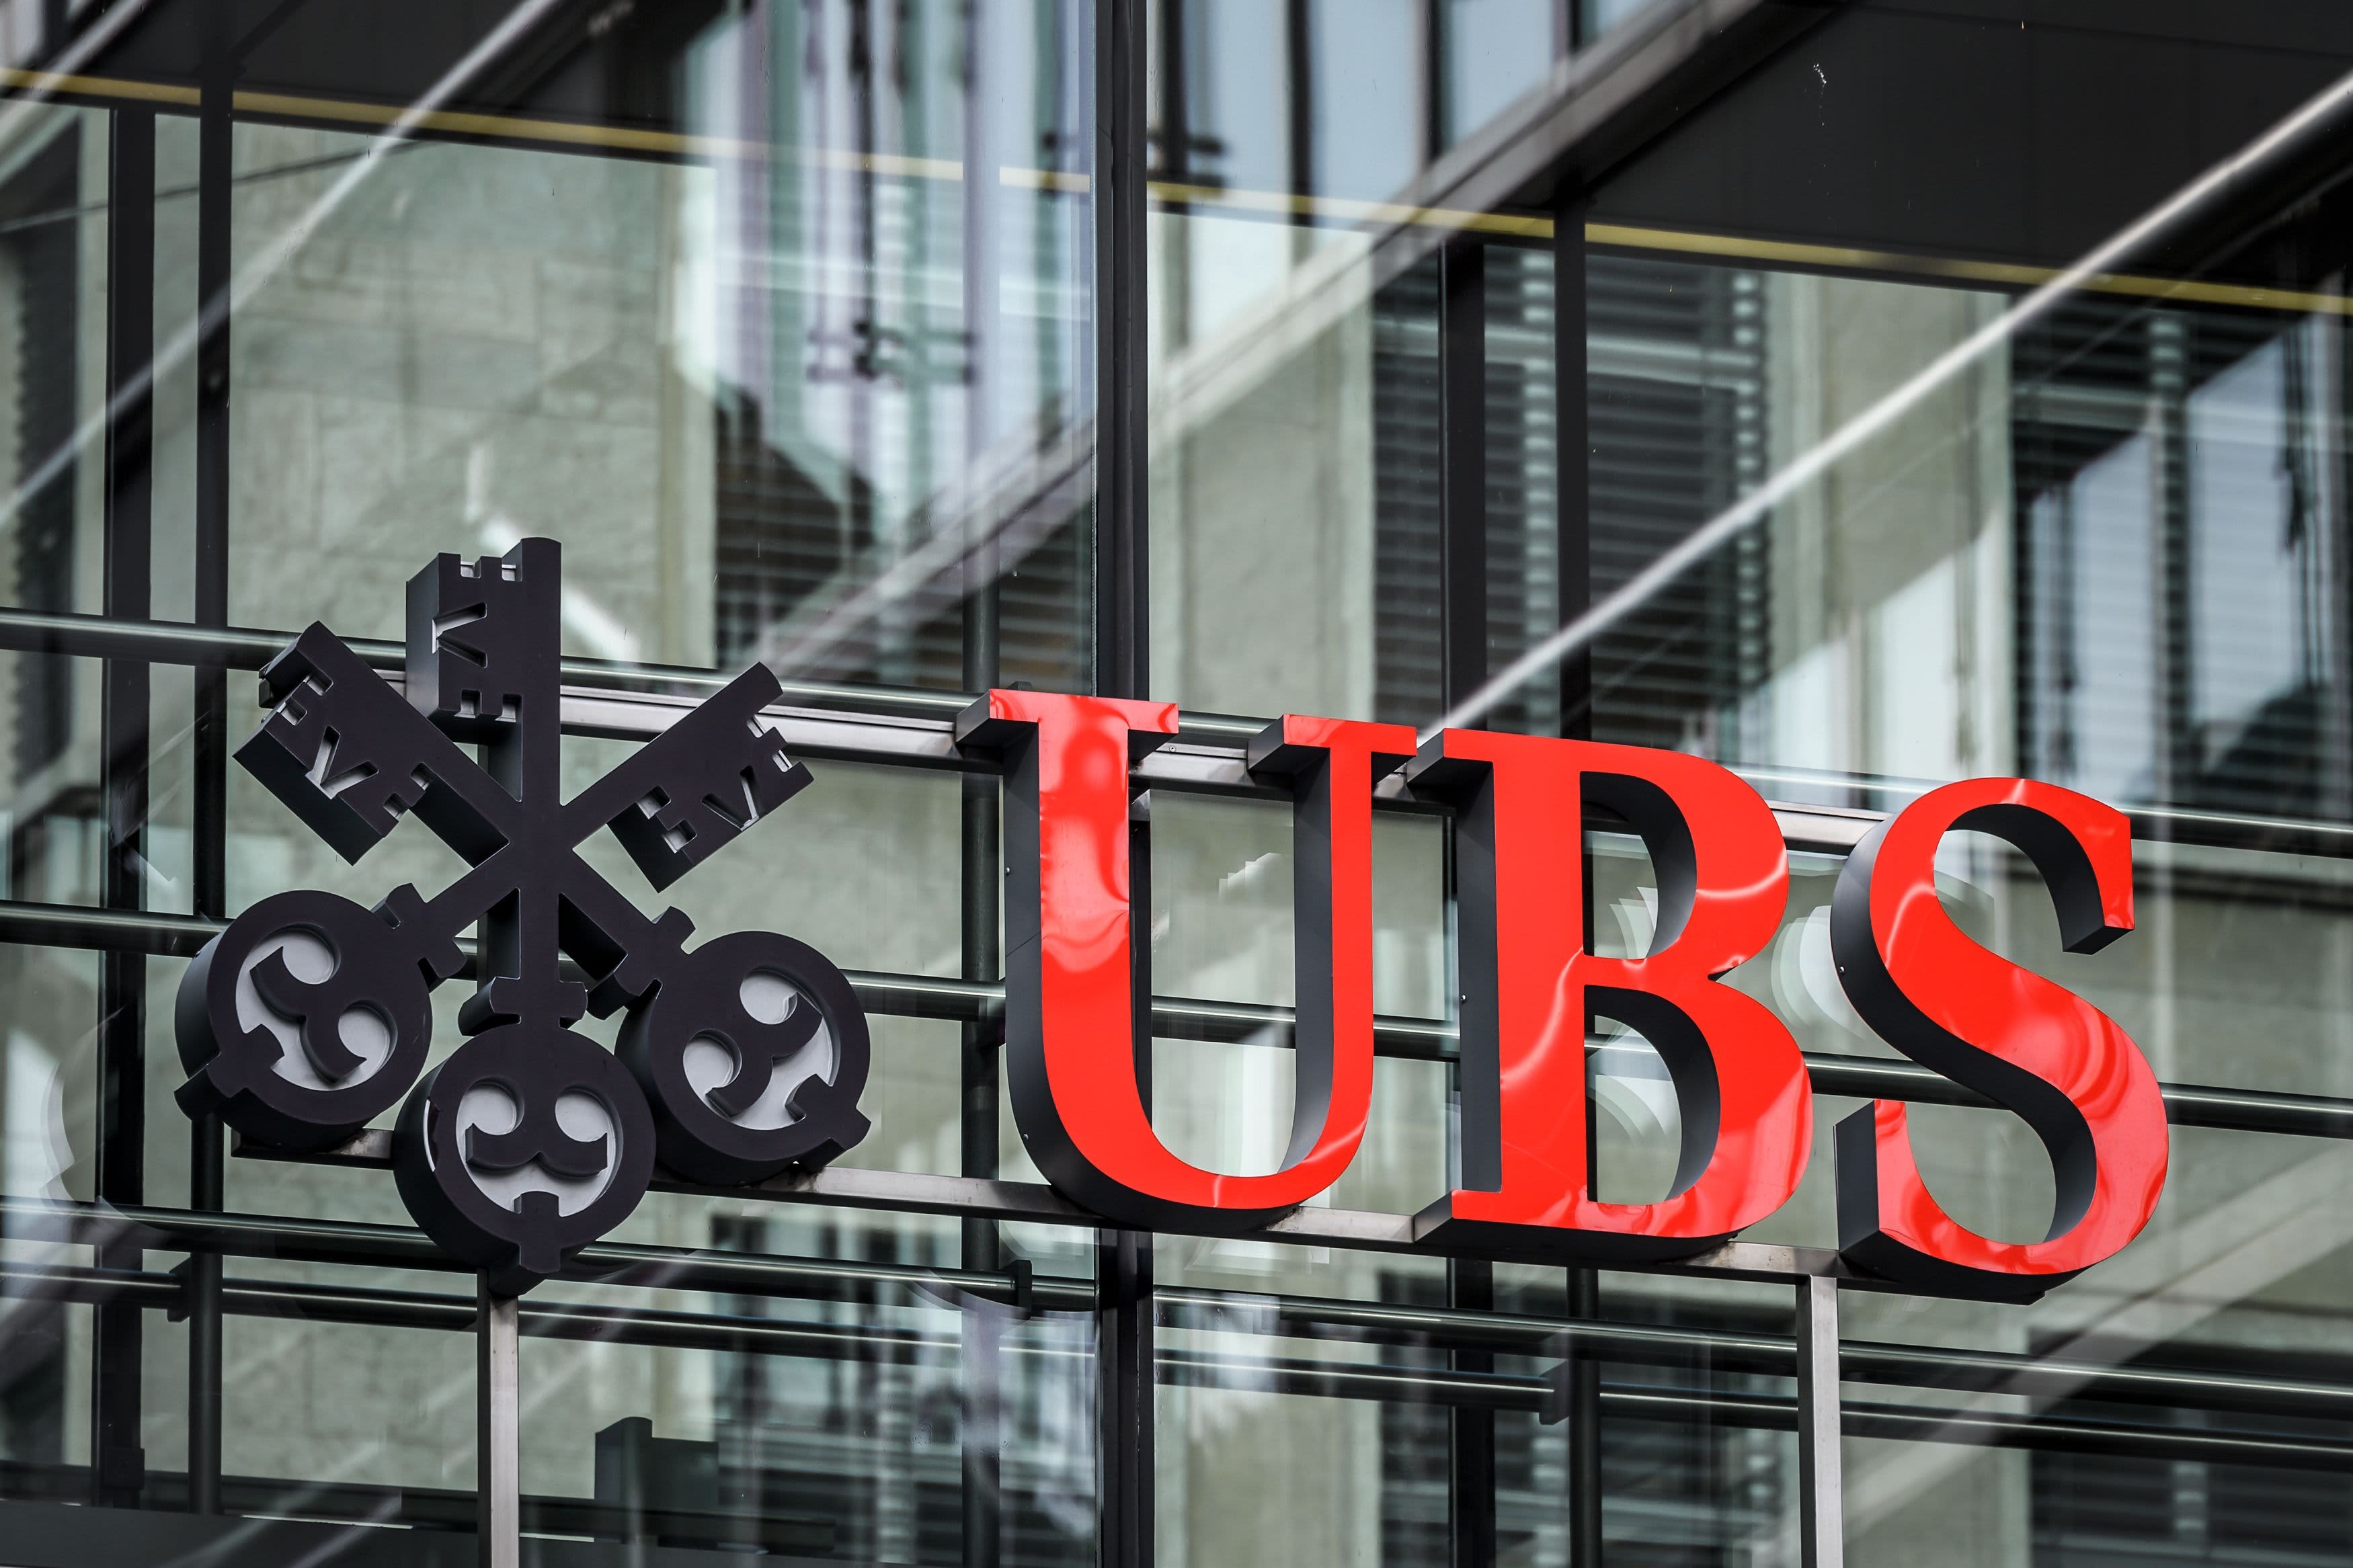 Barclays analysts call for UBS strategy overhaul, suggest break up of Swiss bank